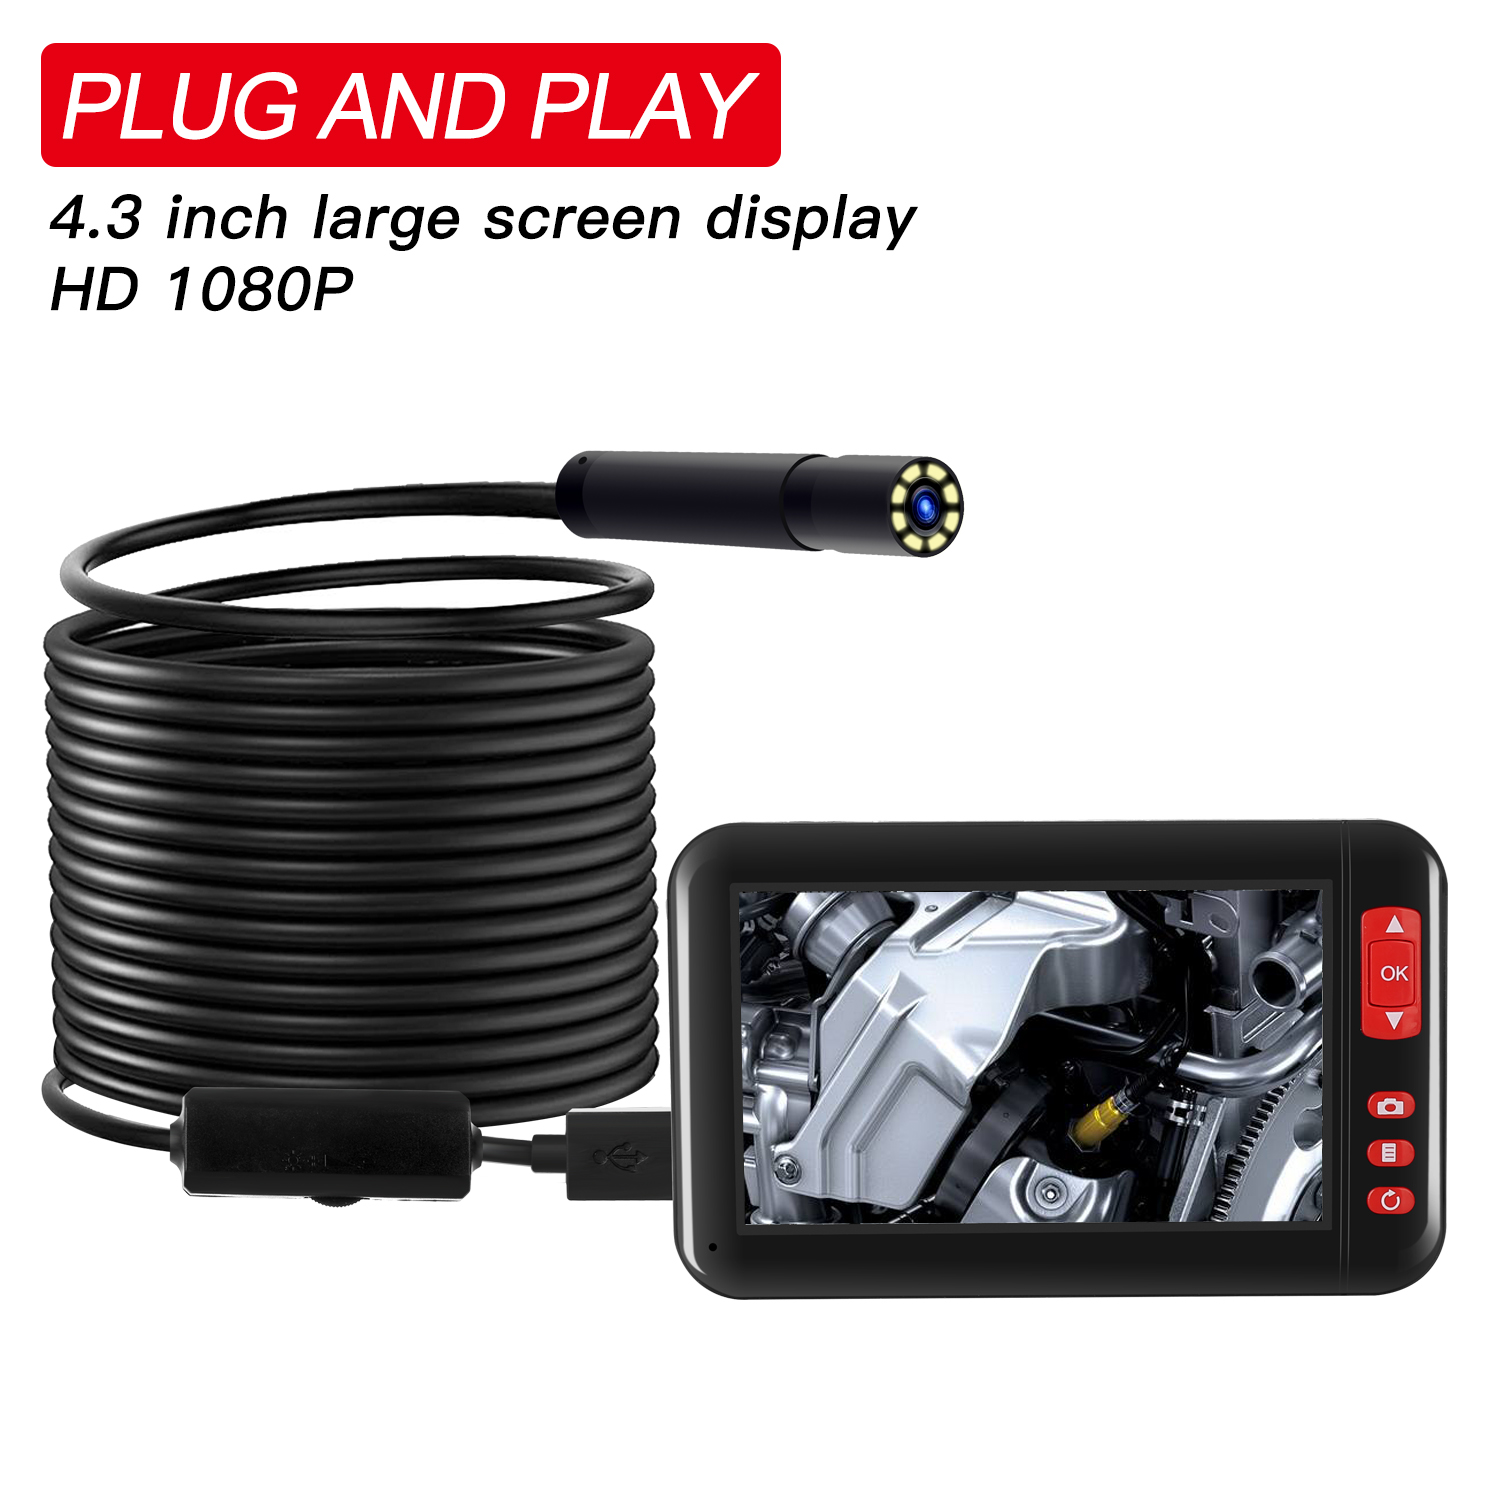 8mm 1080P Endoscope Camera with 4.3 Inch Screen Display 2000mAh 8 LED Light waterproof Inspection Borescope Camera 10 m